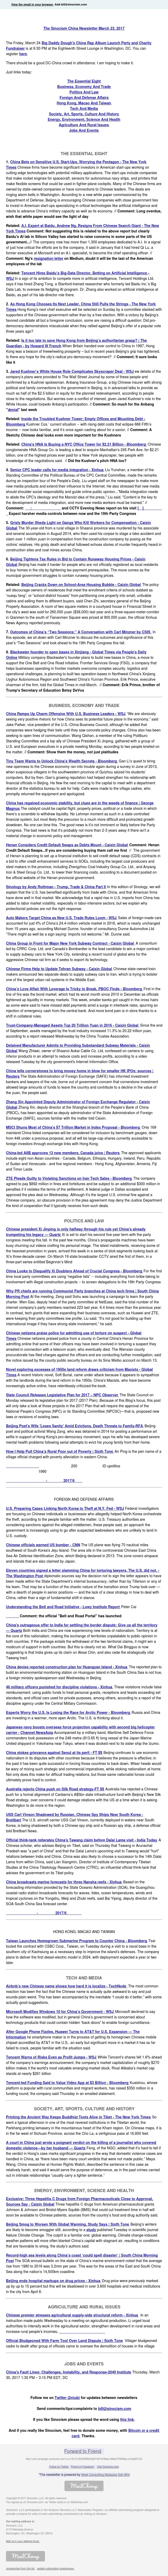 The Sinocism China Newsletter 03.23.17